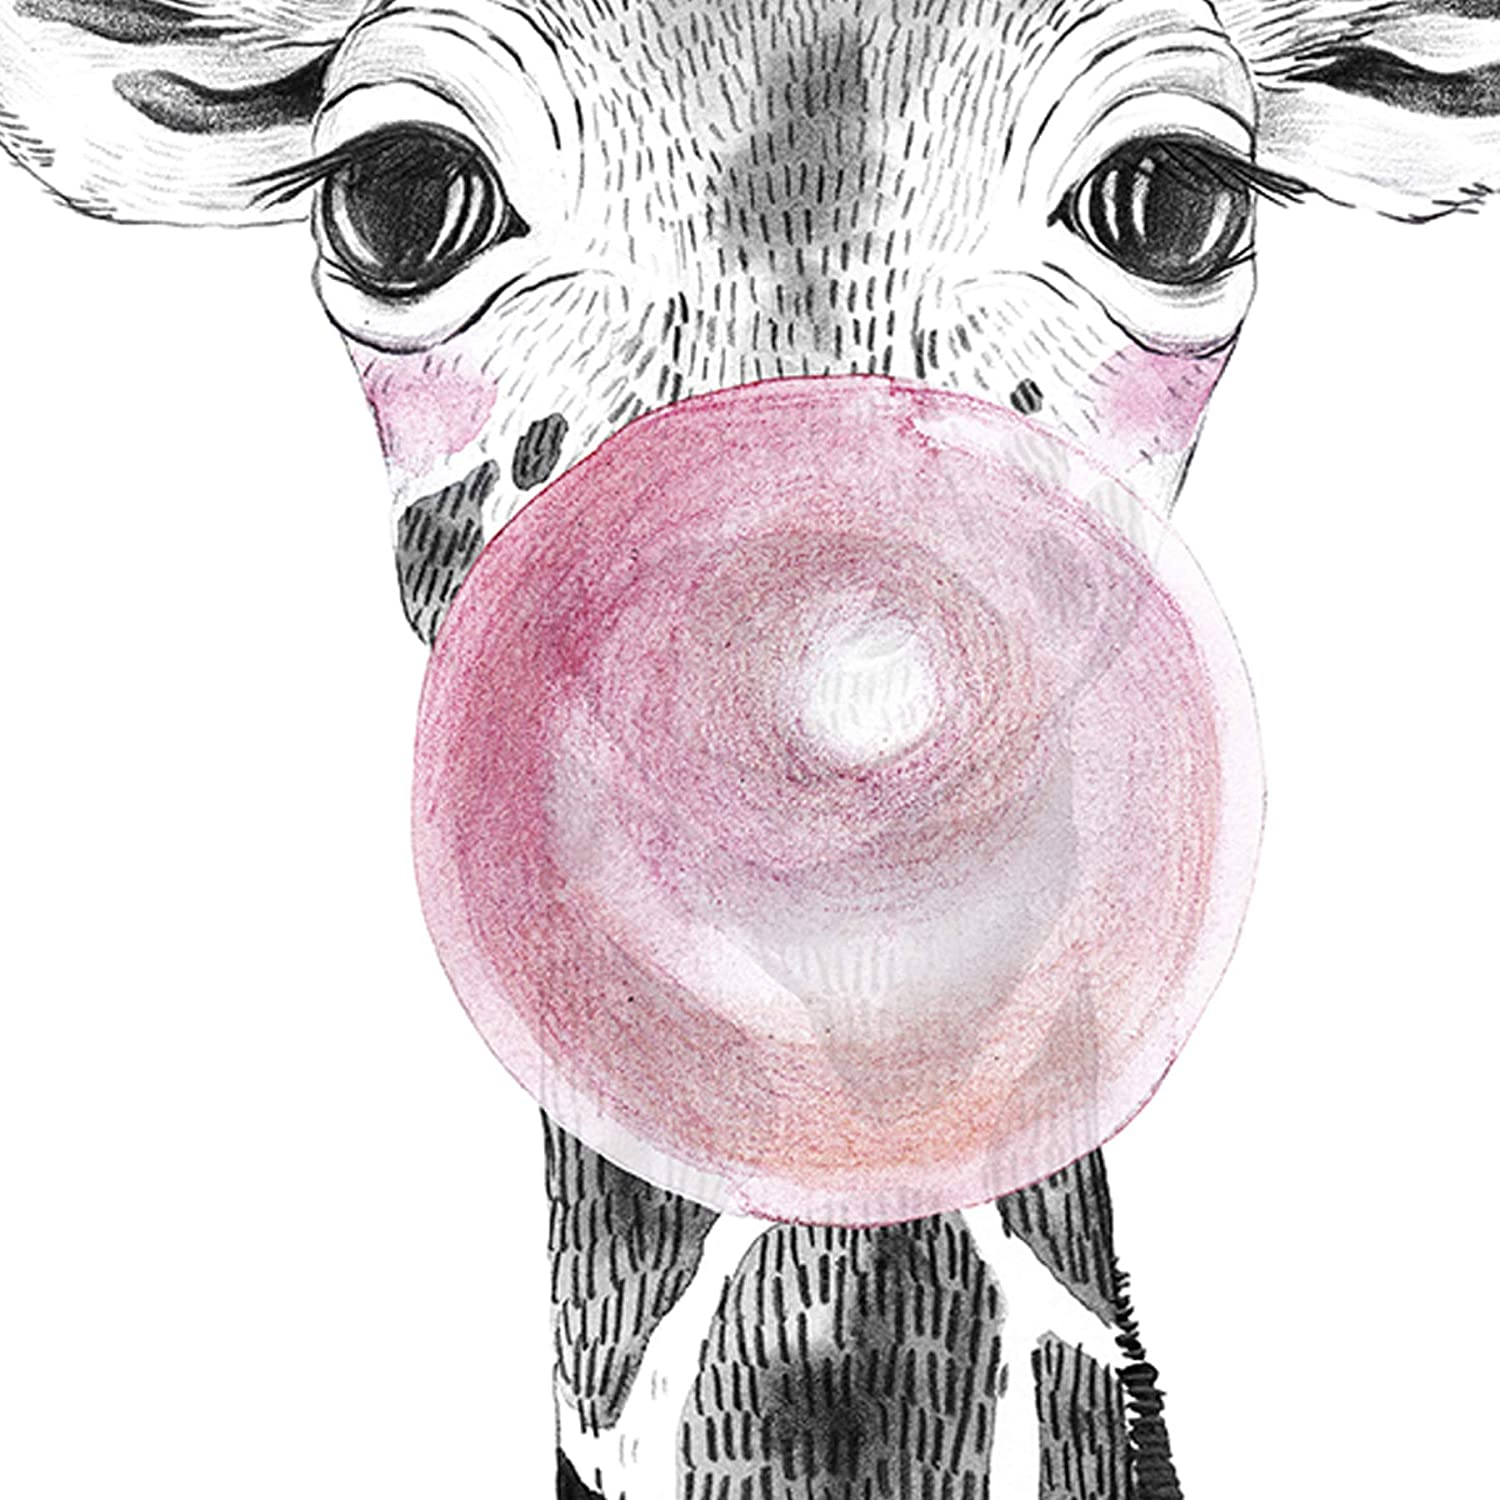 250g Paper NACNIC Nursery Baby Animals with Pink Bubble Gum Wall D/écor Art Prints Beautiful Poster Painting for Home Office Living Room Set of 4 Sheets Unframed 8x11 Inch Size